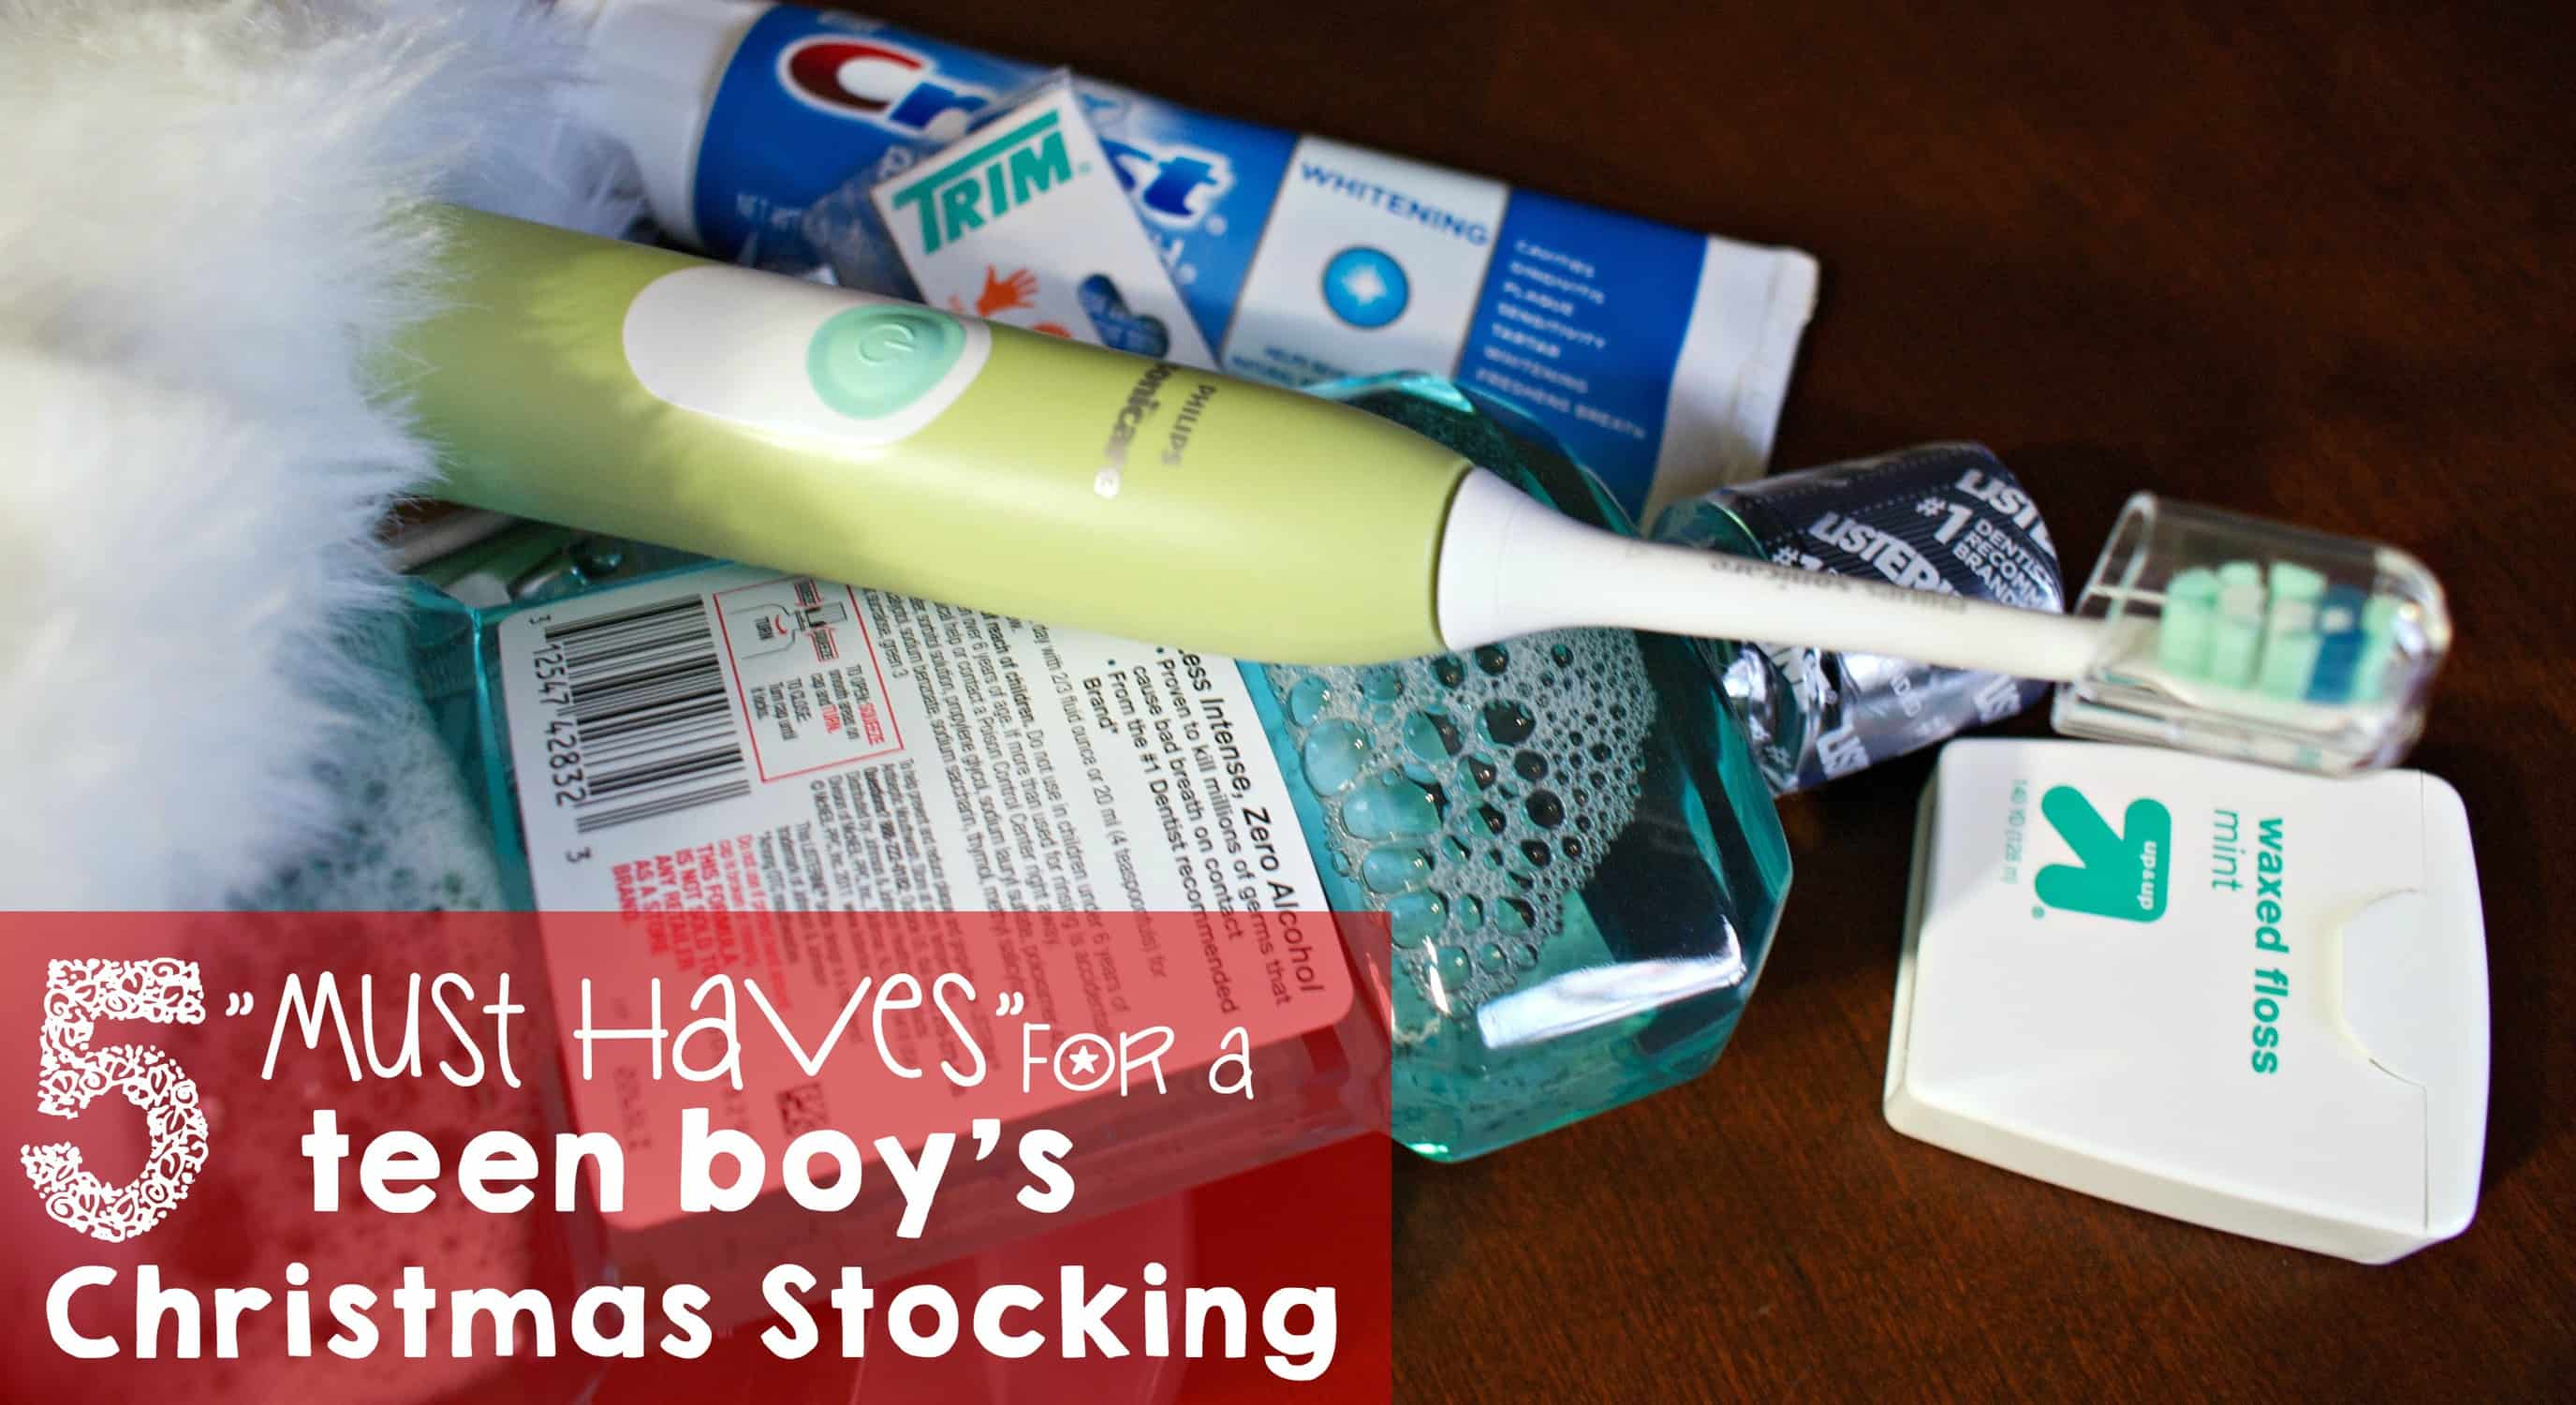 5 must haves for a teen boy's christmas stocking fb